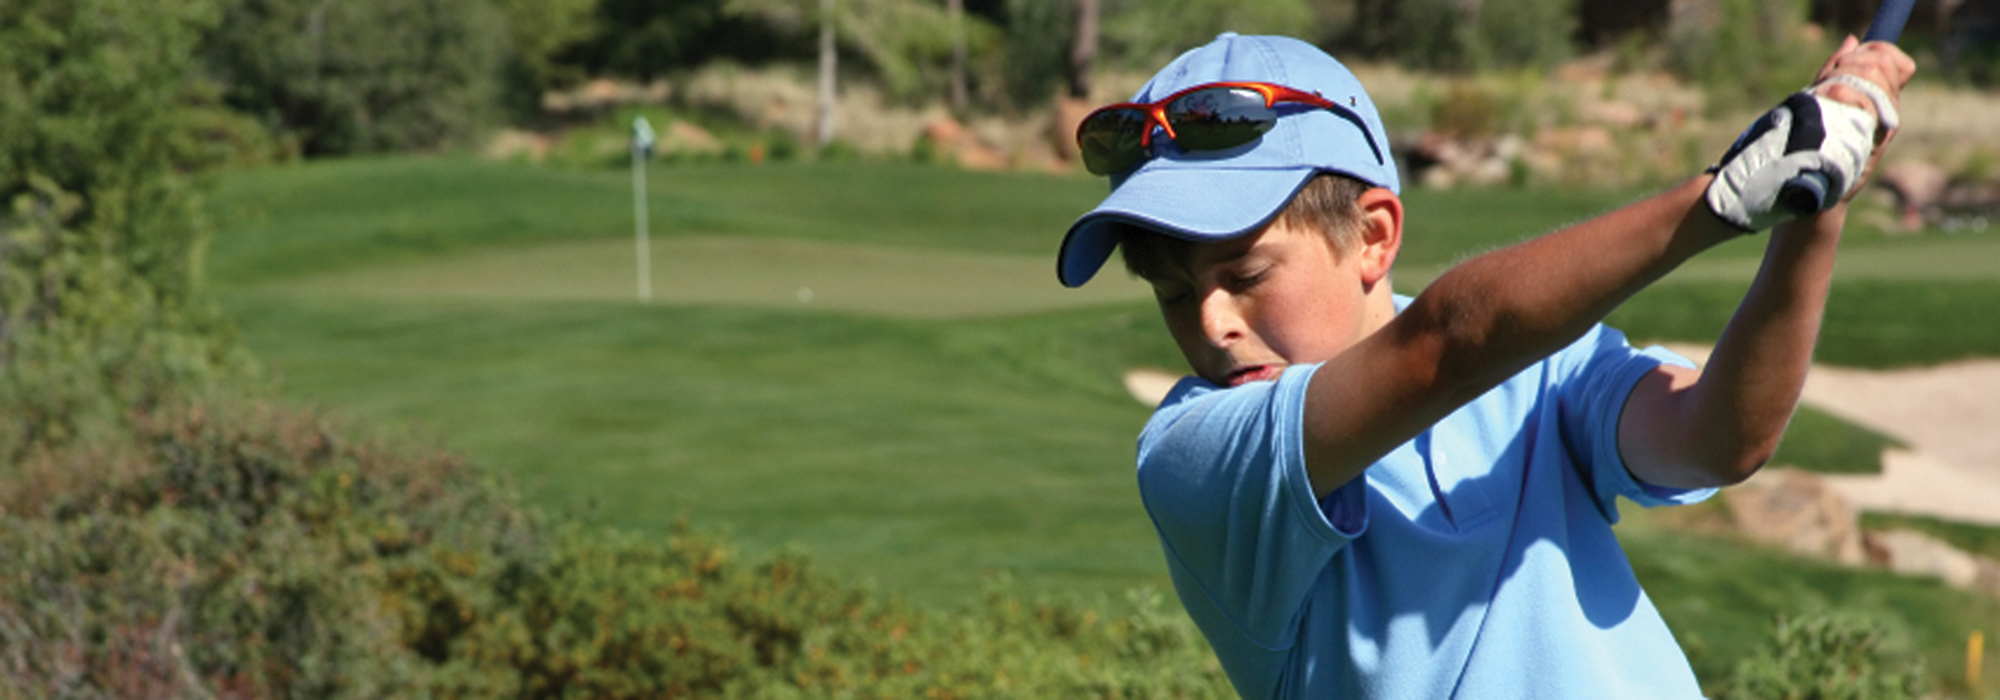 junior_golf_dev_hero